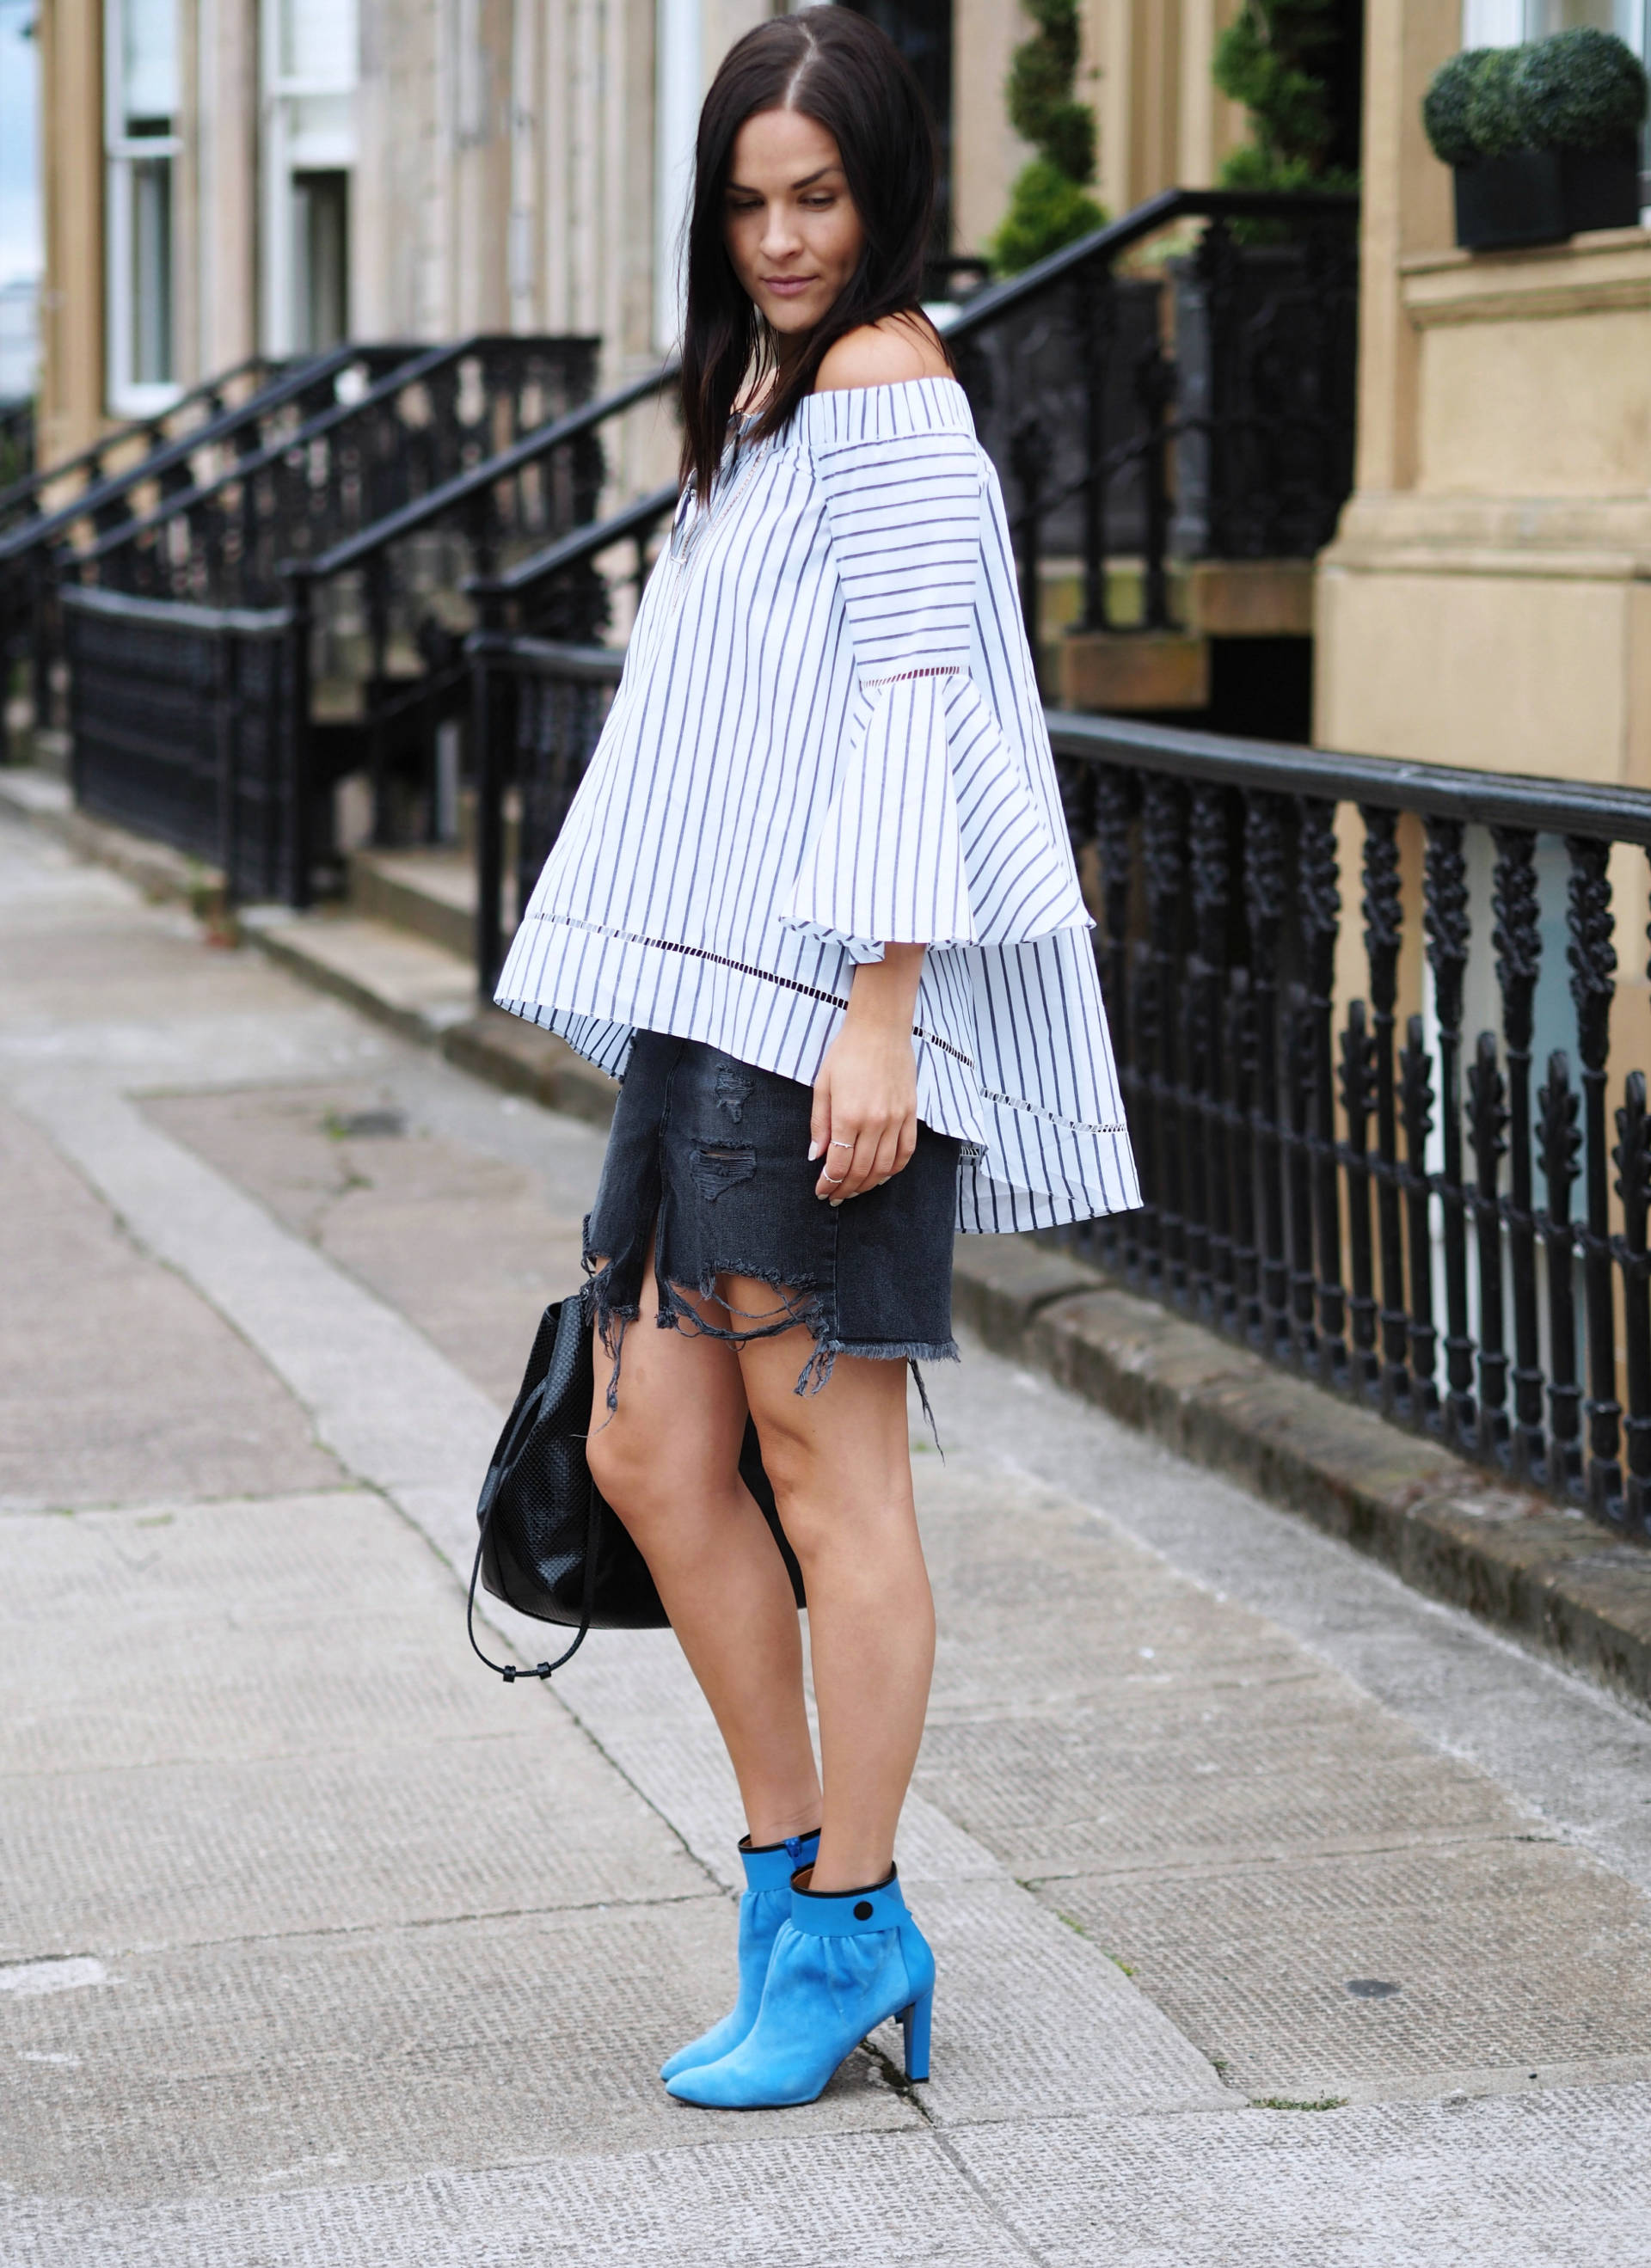 OFF THE SHOULDER TOP AND RIPPED DENIM SKIRT - LAFOTKA UK FASHION BLOGGER STYLING